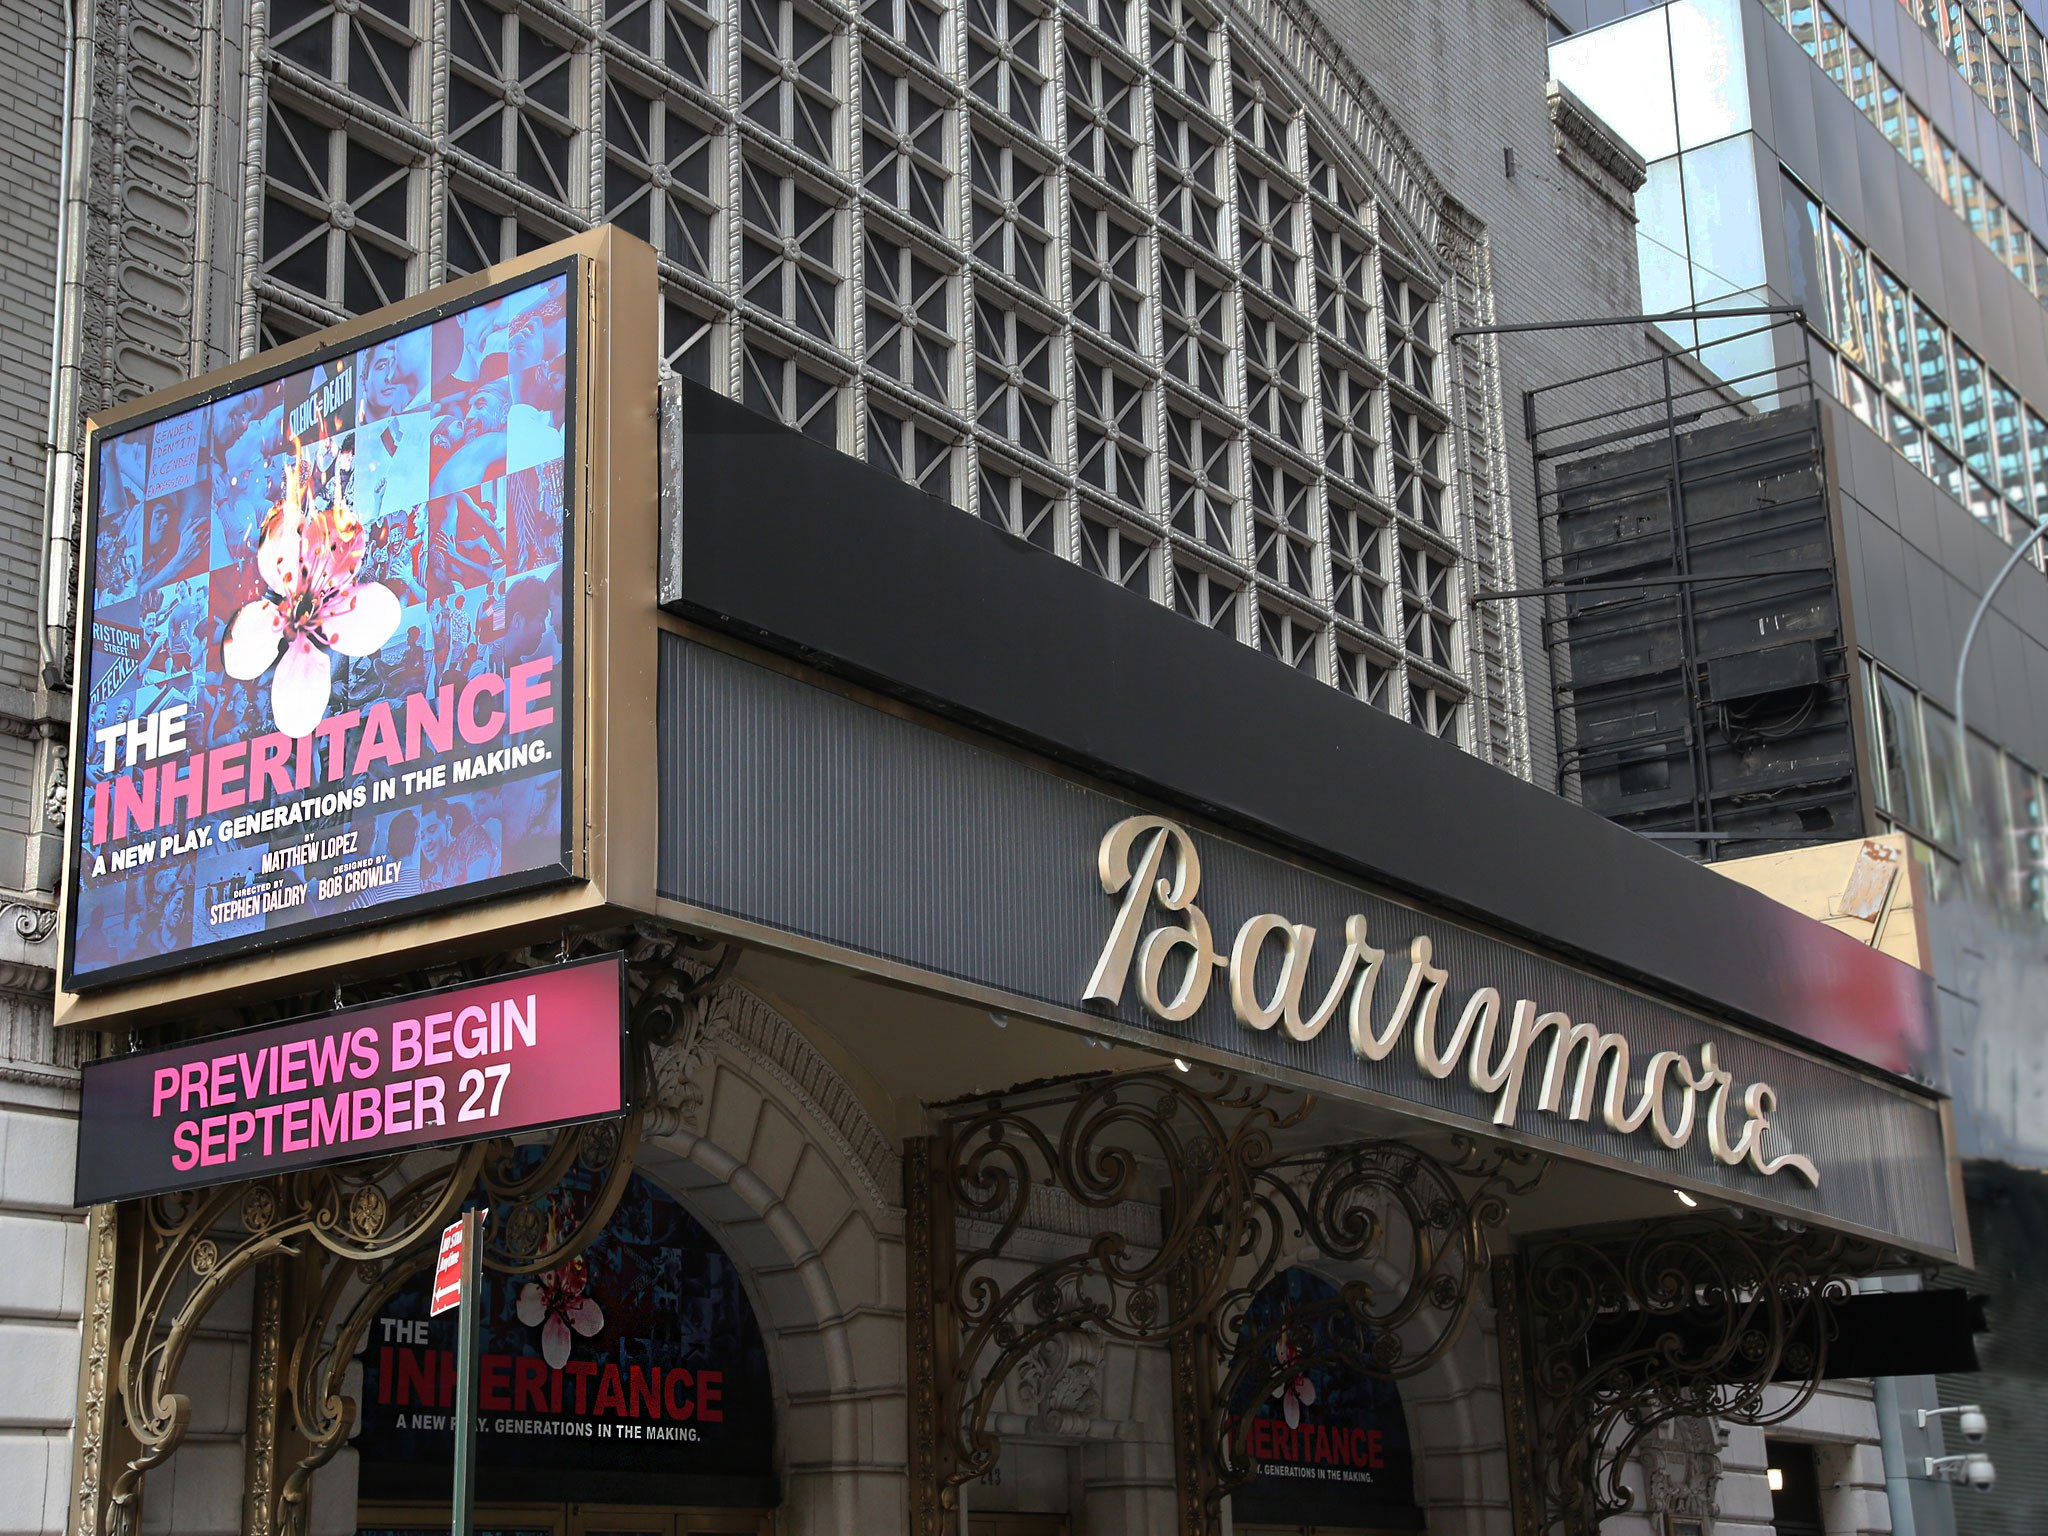 The Inheritance at the Barrymore Theatre